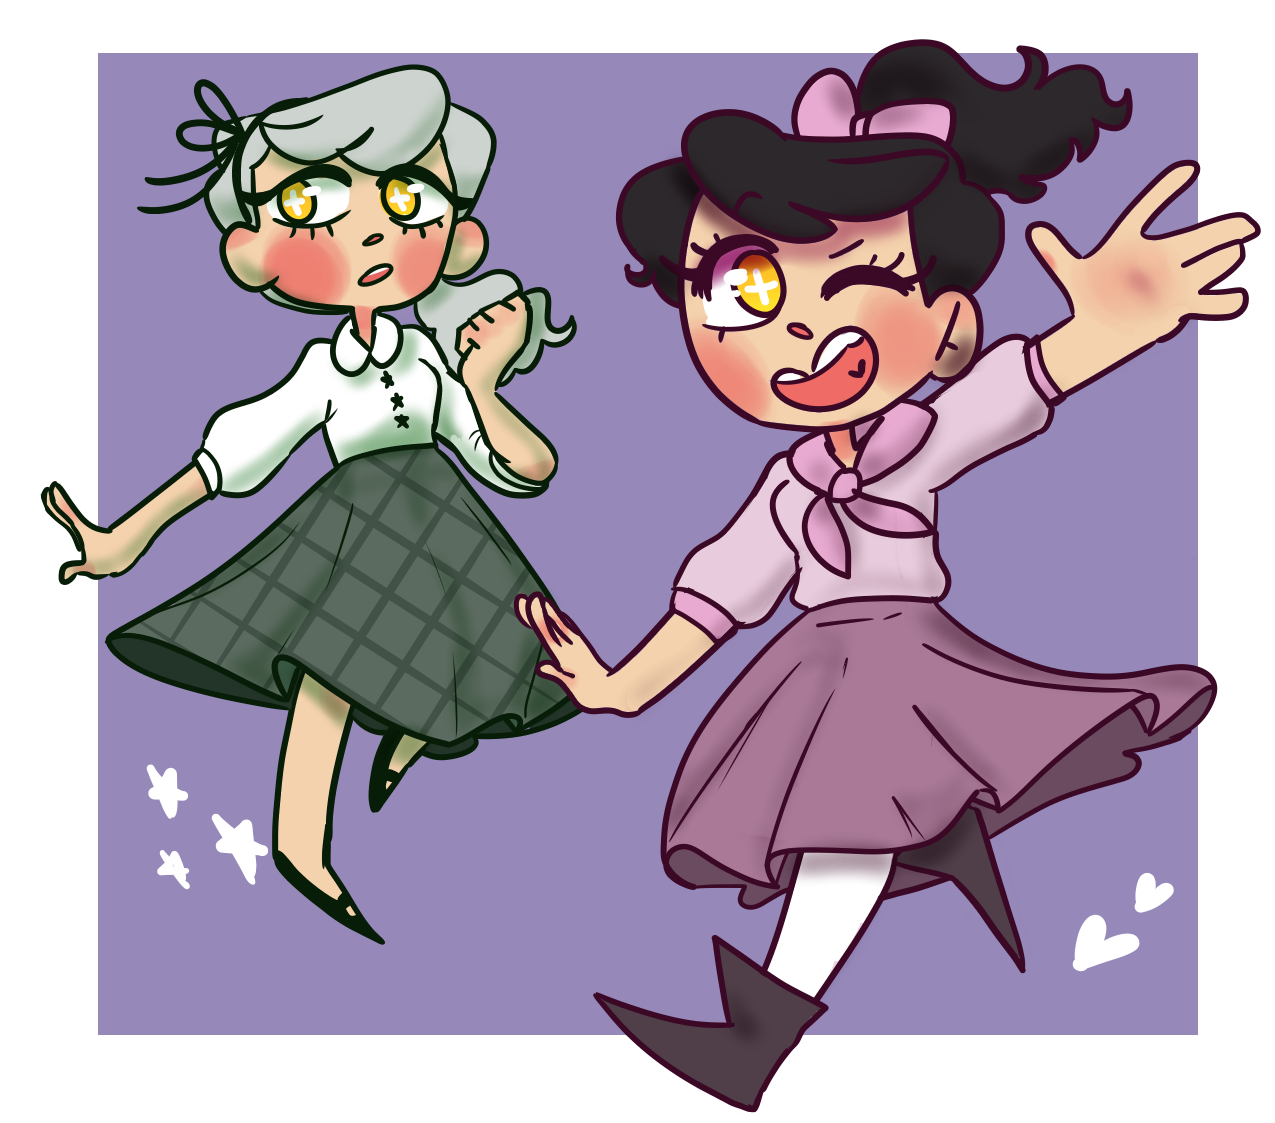 Excited clipart extroverted. Splatoon flapper au this